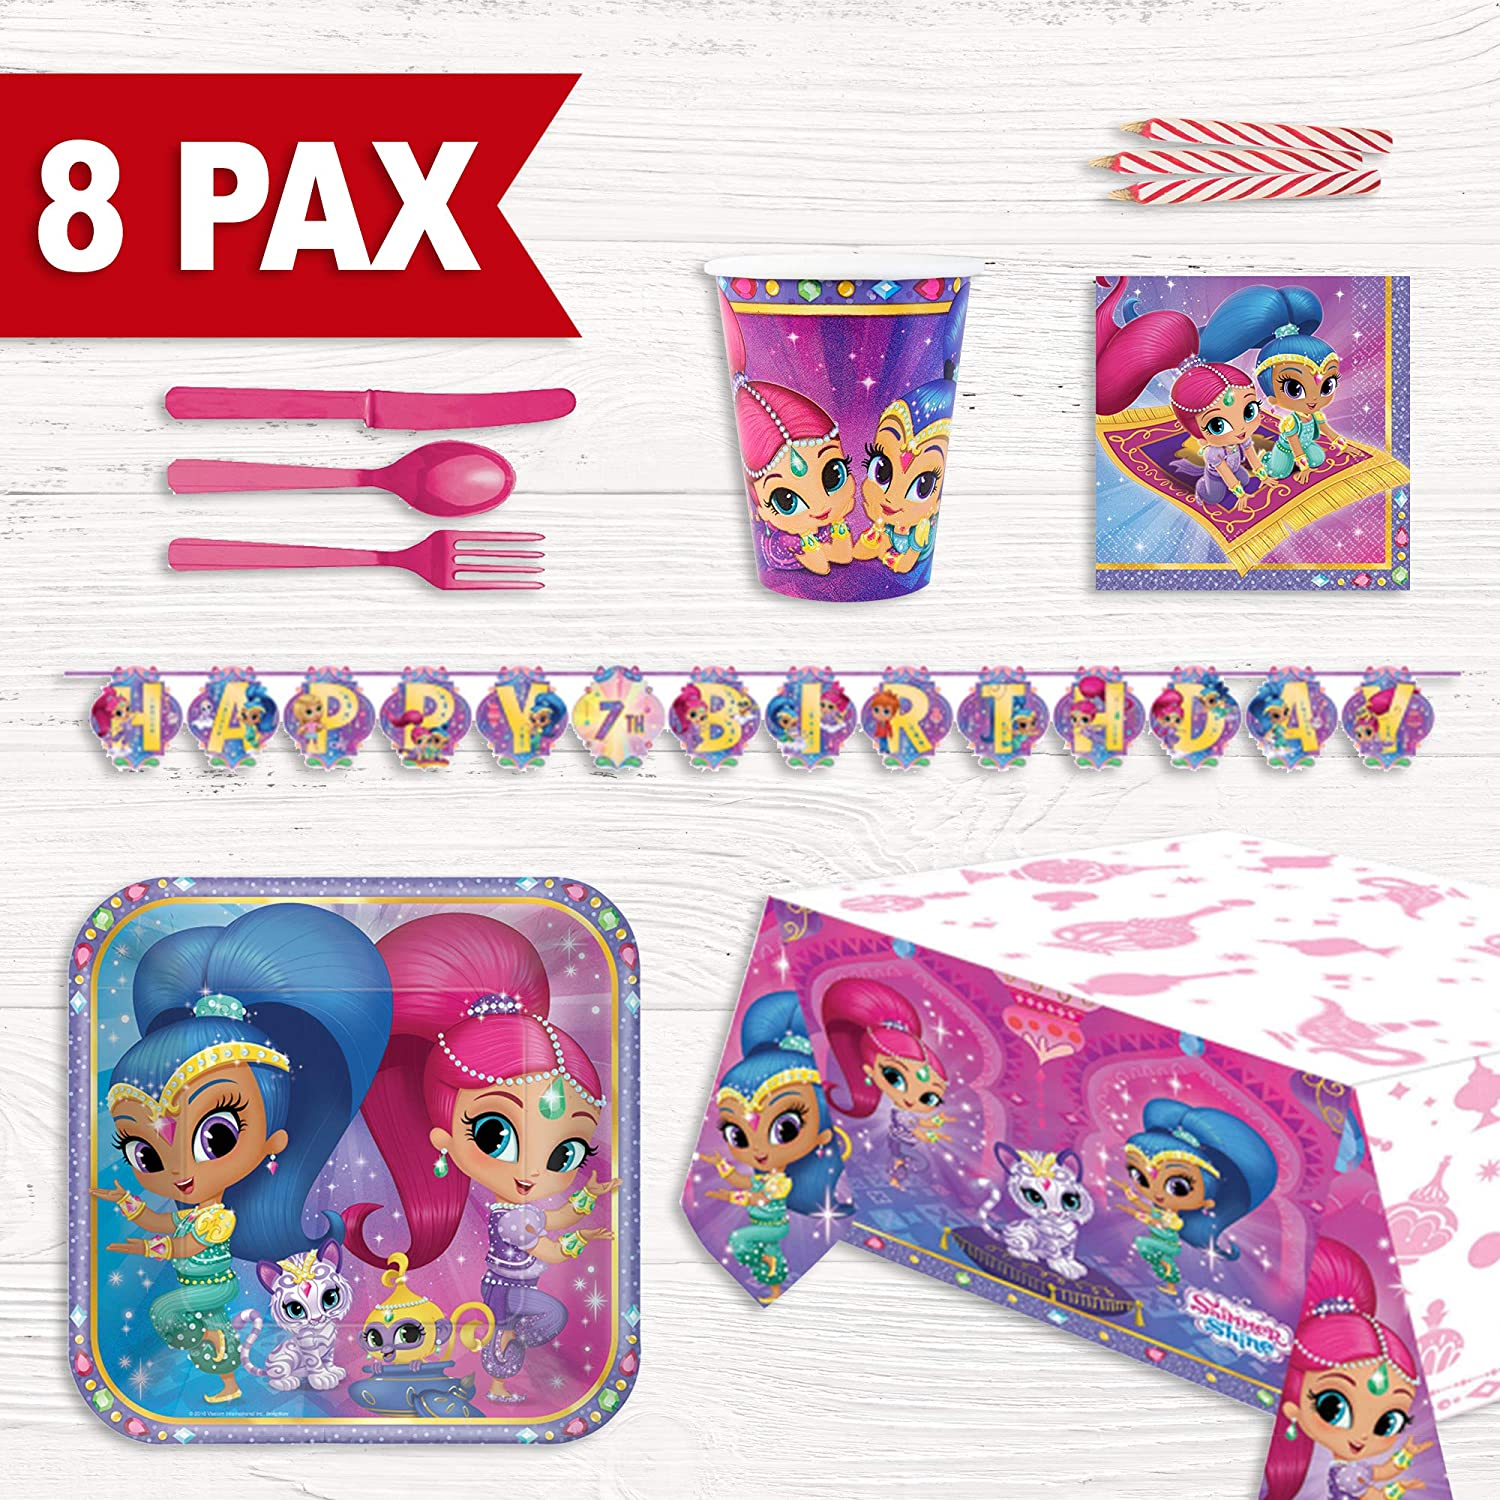 Party Fiesta Pack cumpleaños Shimmer & Shine para 8 Personas ...